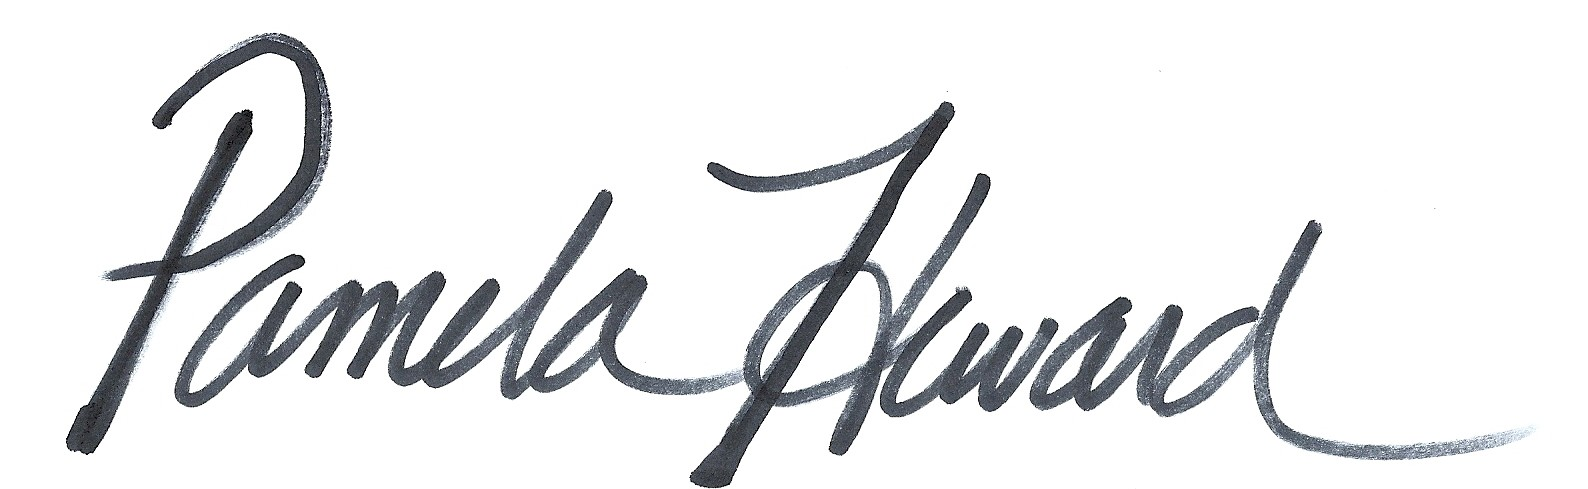 Pamela Heward Signature